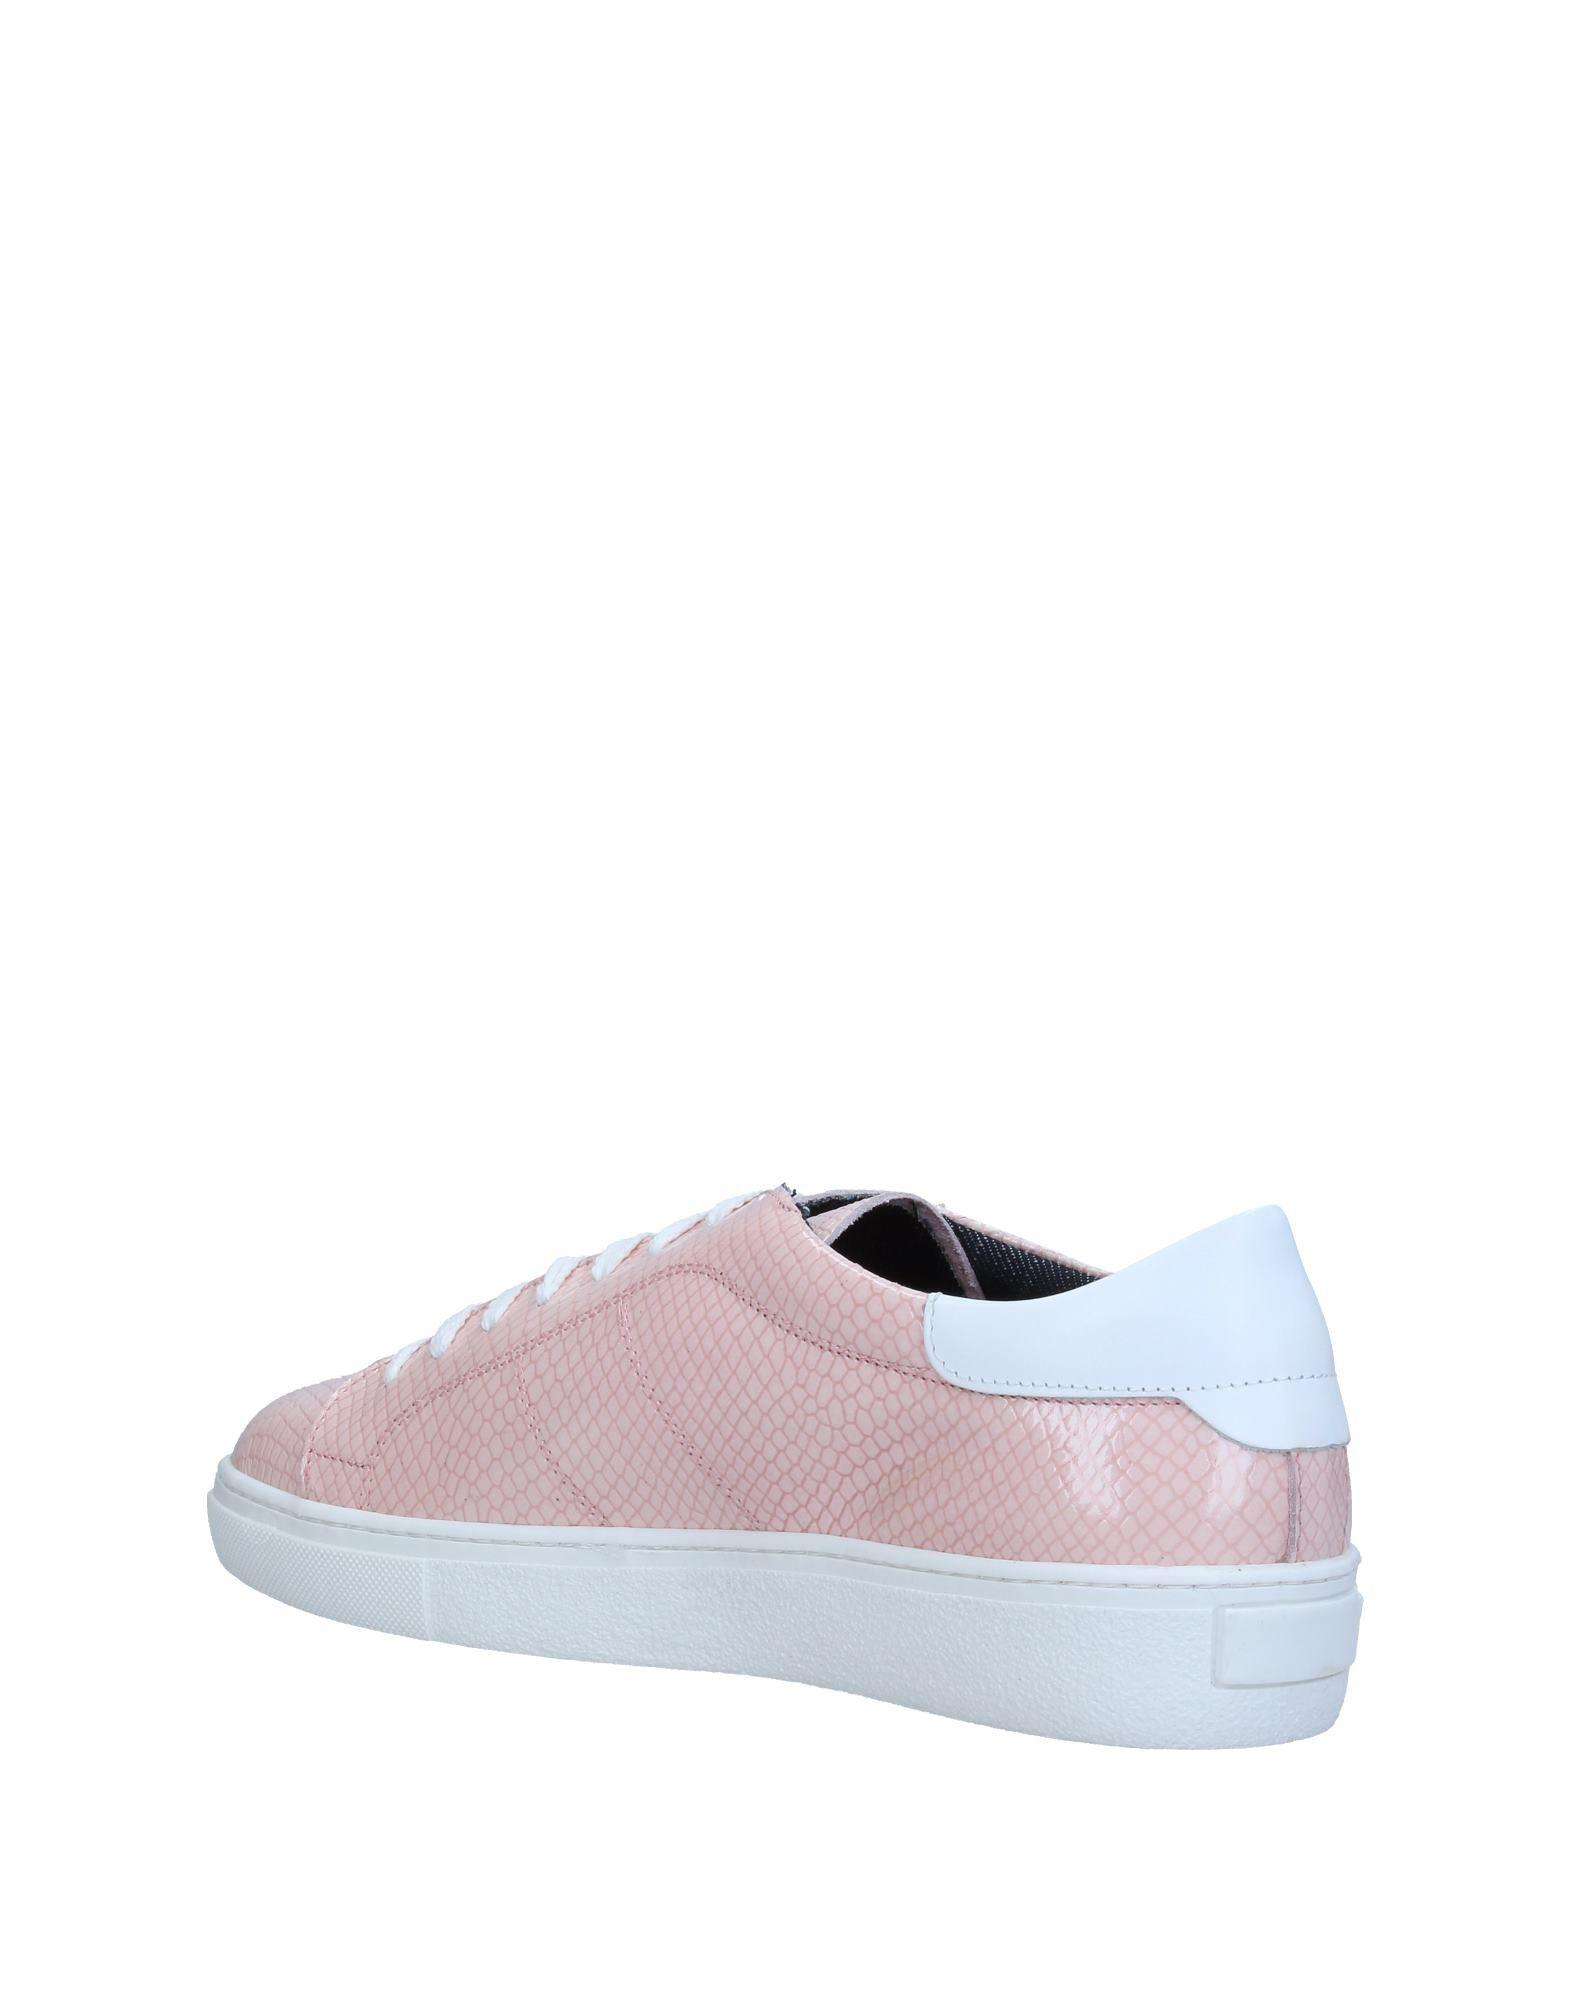 Gianmarco Lorenzi Leather Low-tops & Sneakers in Pink